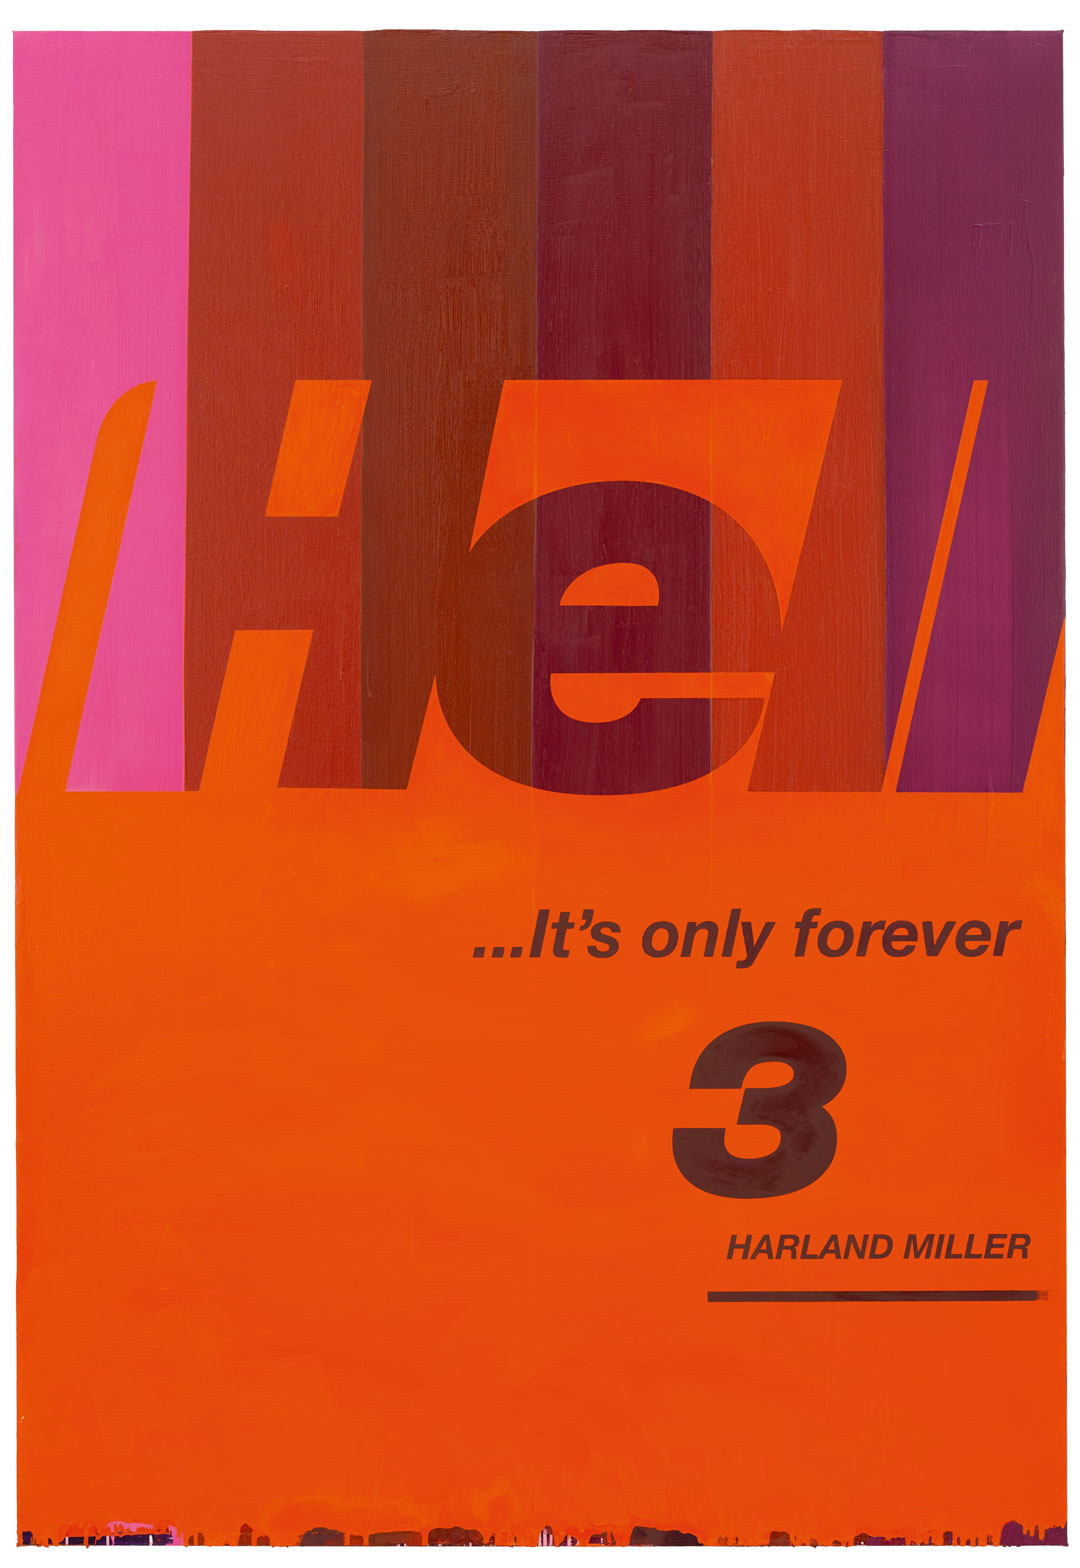 Hell… It's Only Forever 3 (2016) by Harland Miller. As reproduced in Harland Miller: In Shadows I Boogie